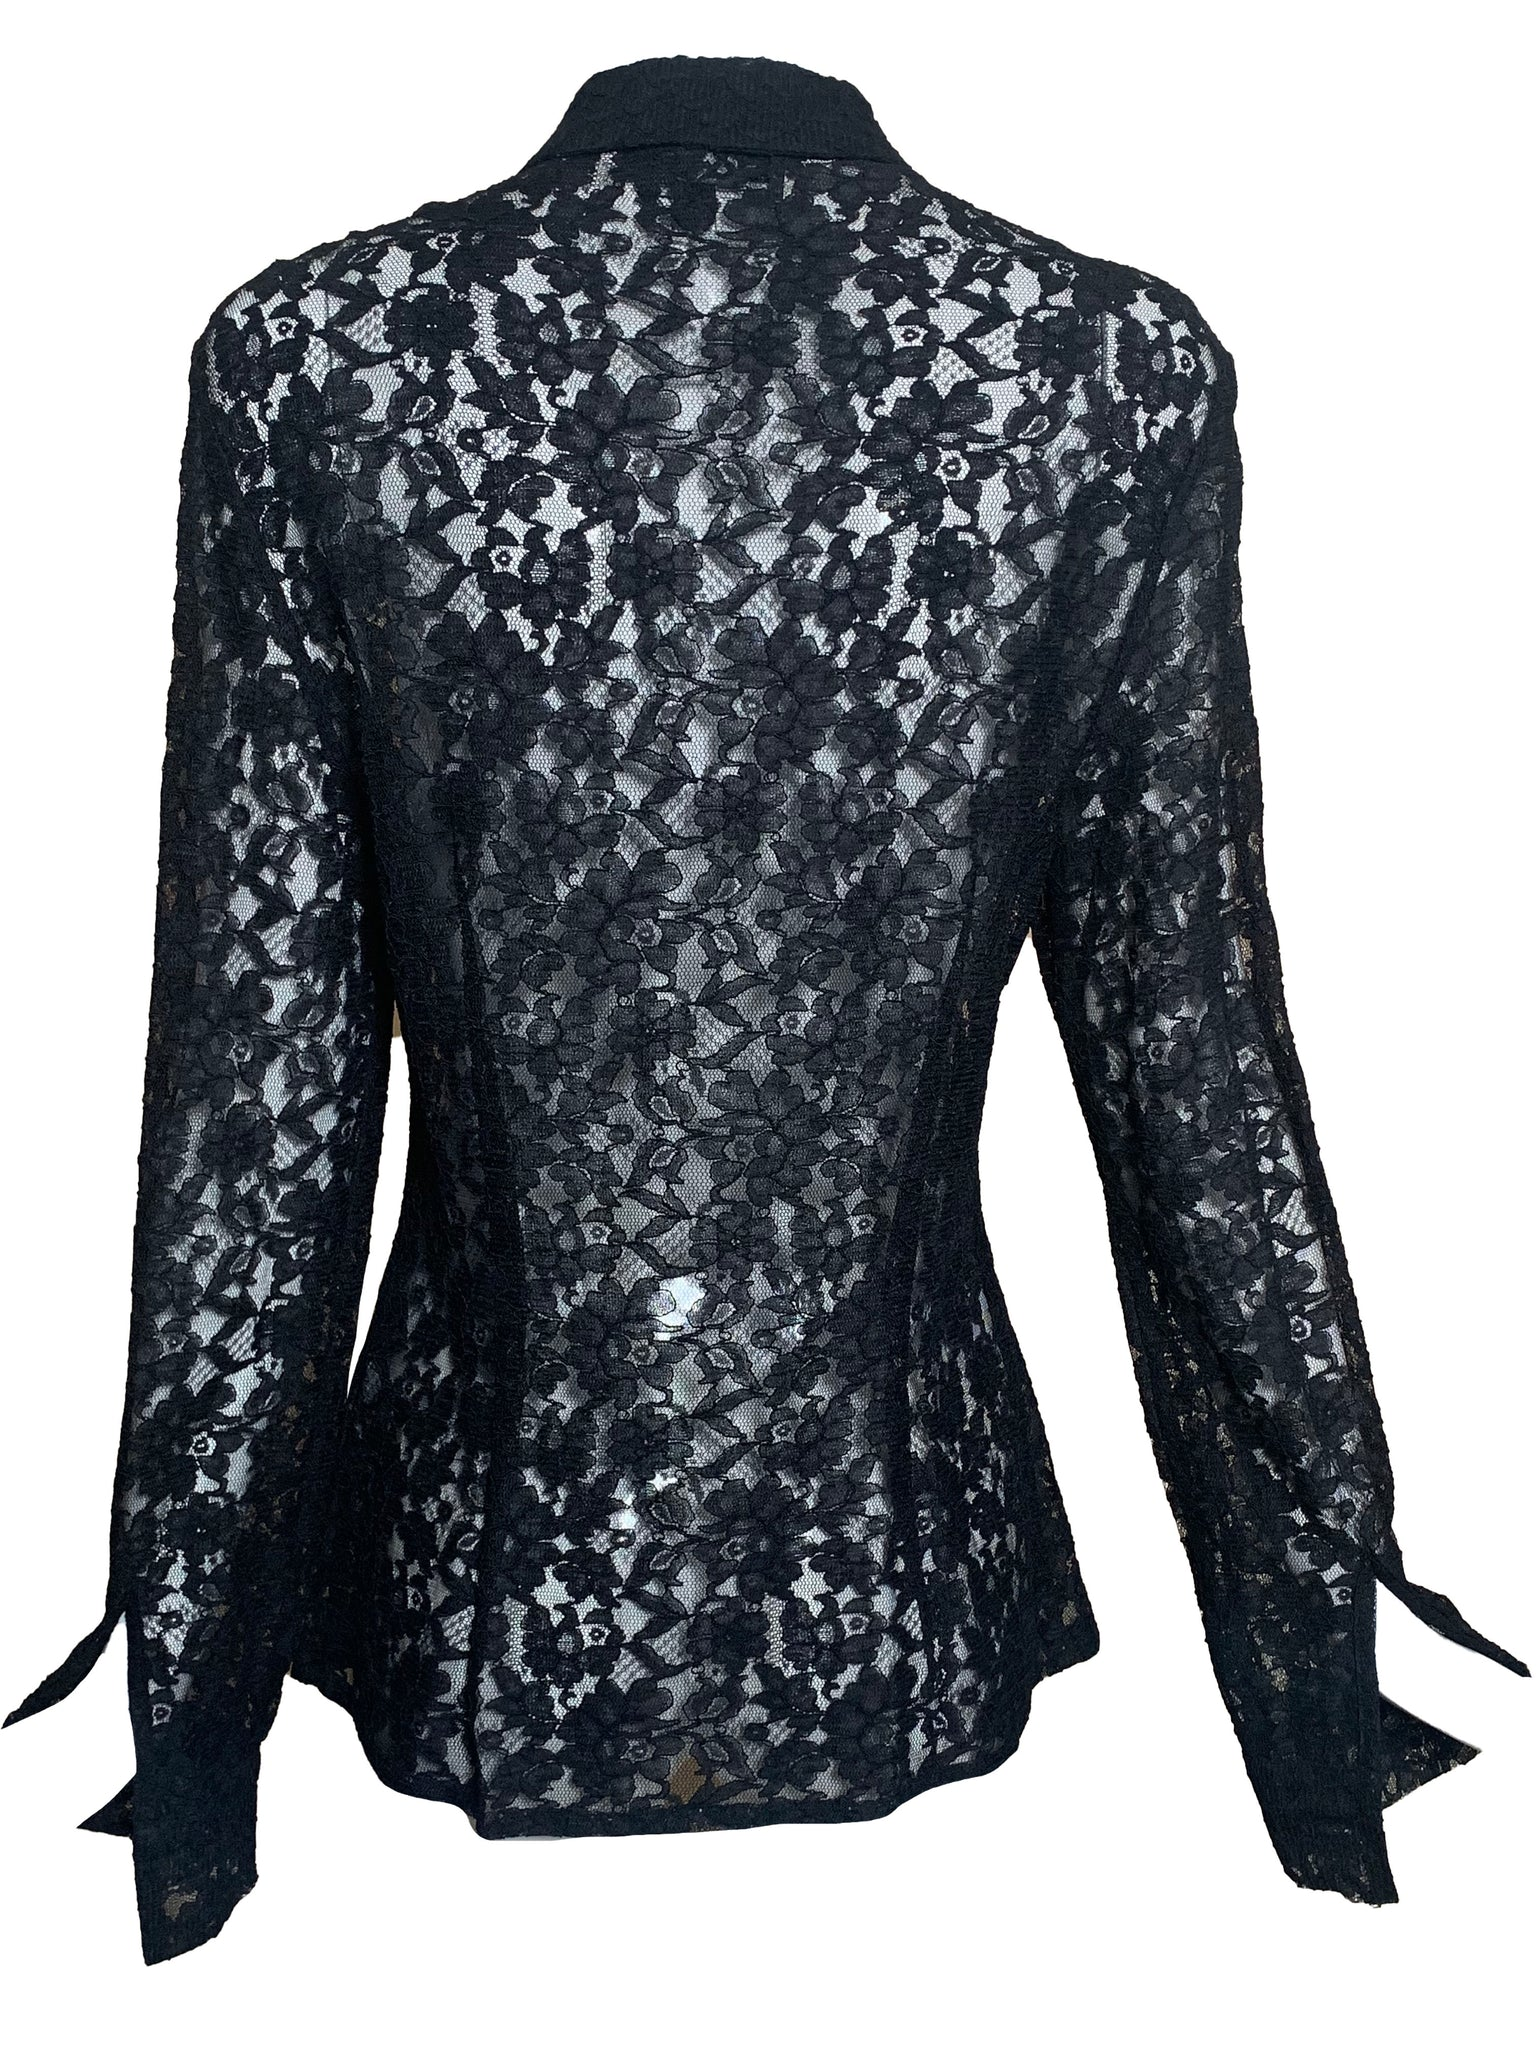 Dolce and Gabbana Black lace Button Down Blouse BACK 3 of 5